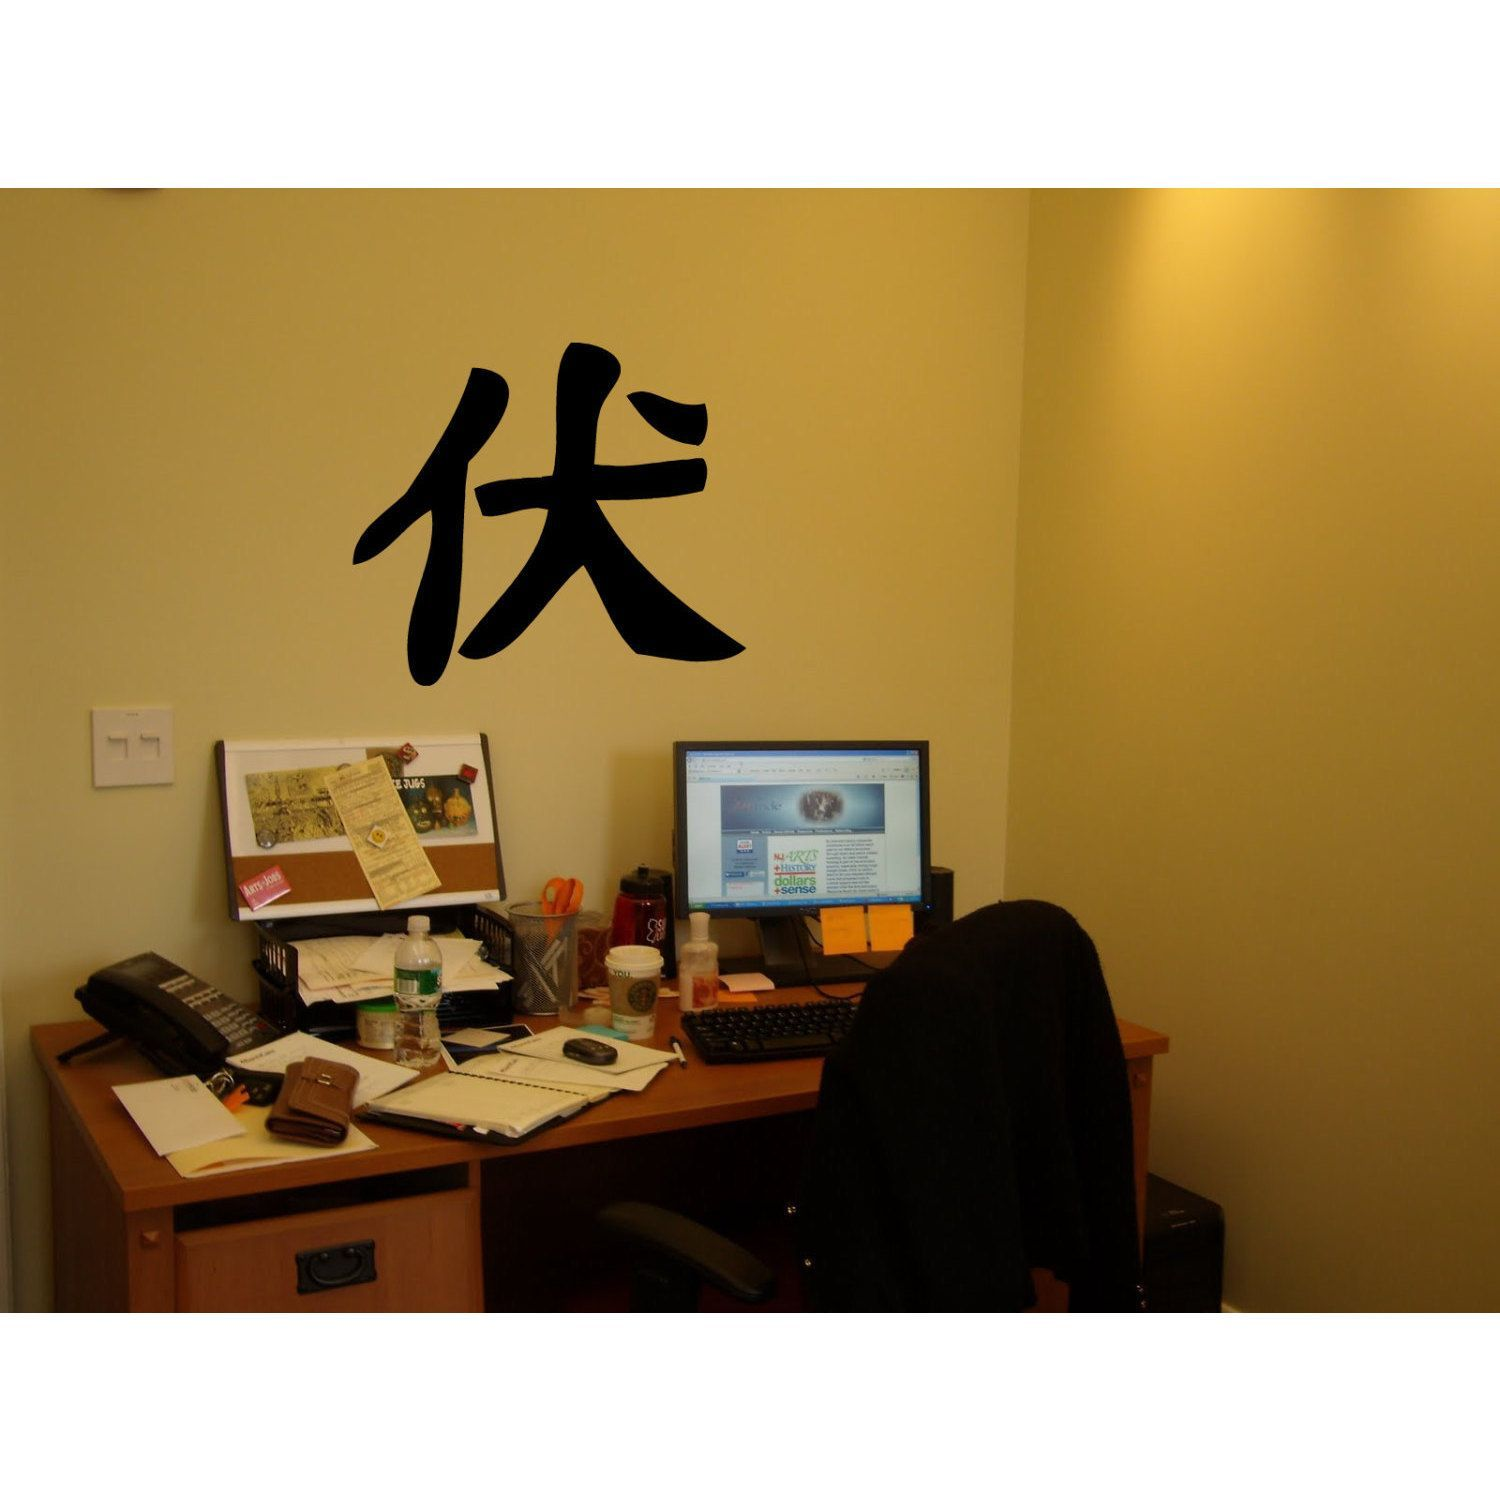 Bend Over Kanji decal Sticker Vinyl Wall Art | Products | Pinterest ...